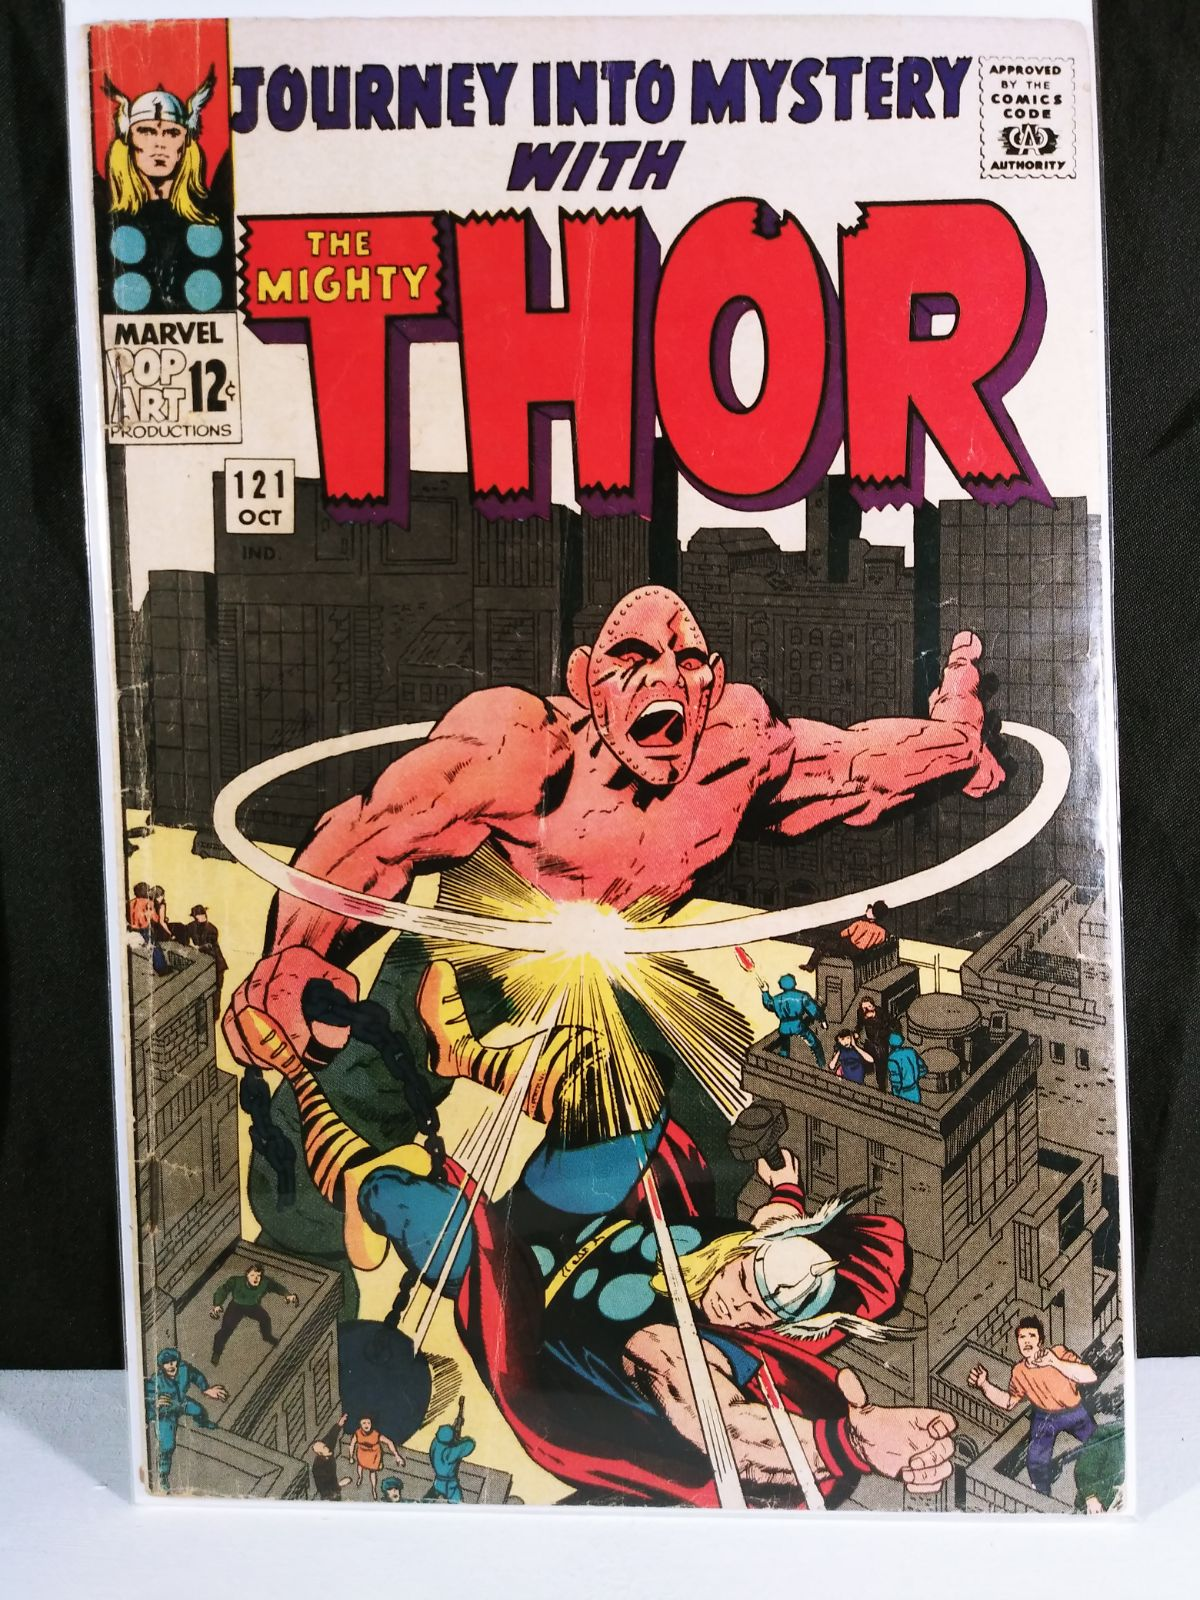 Journey into Mystery, Thor, 121, 12 cent